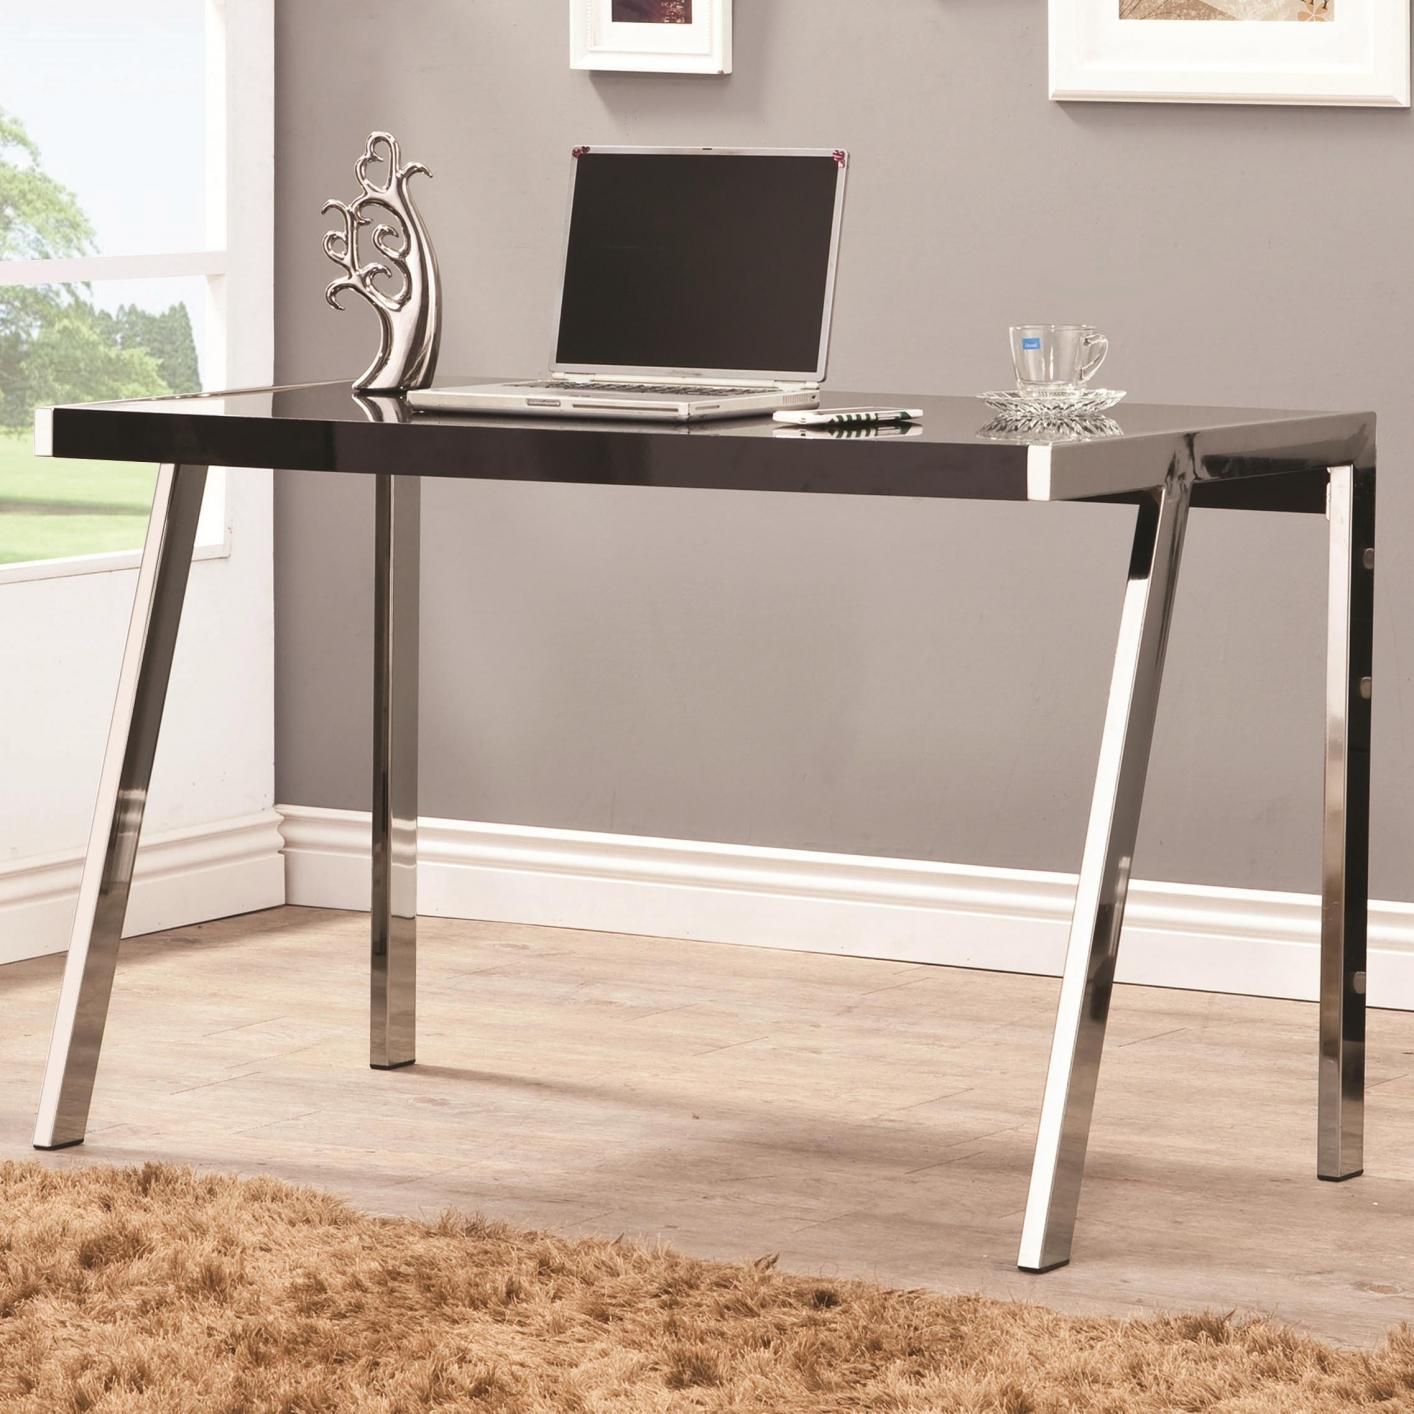 Silver wood office desk steal a sofa furniture outlet los angeles ca - Metal office desk ...